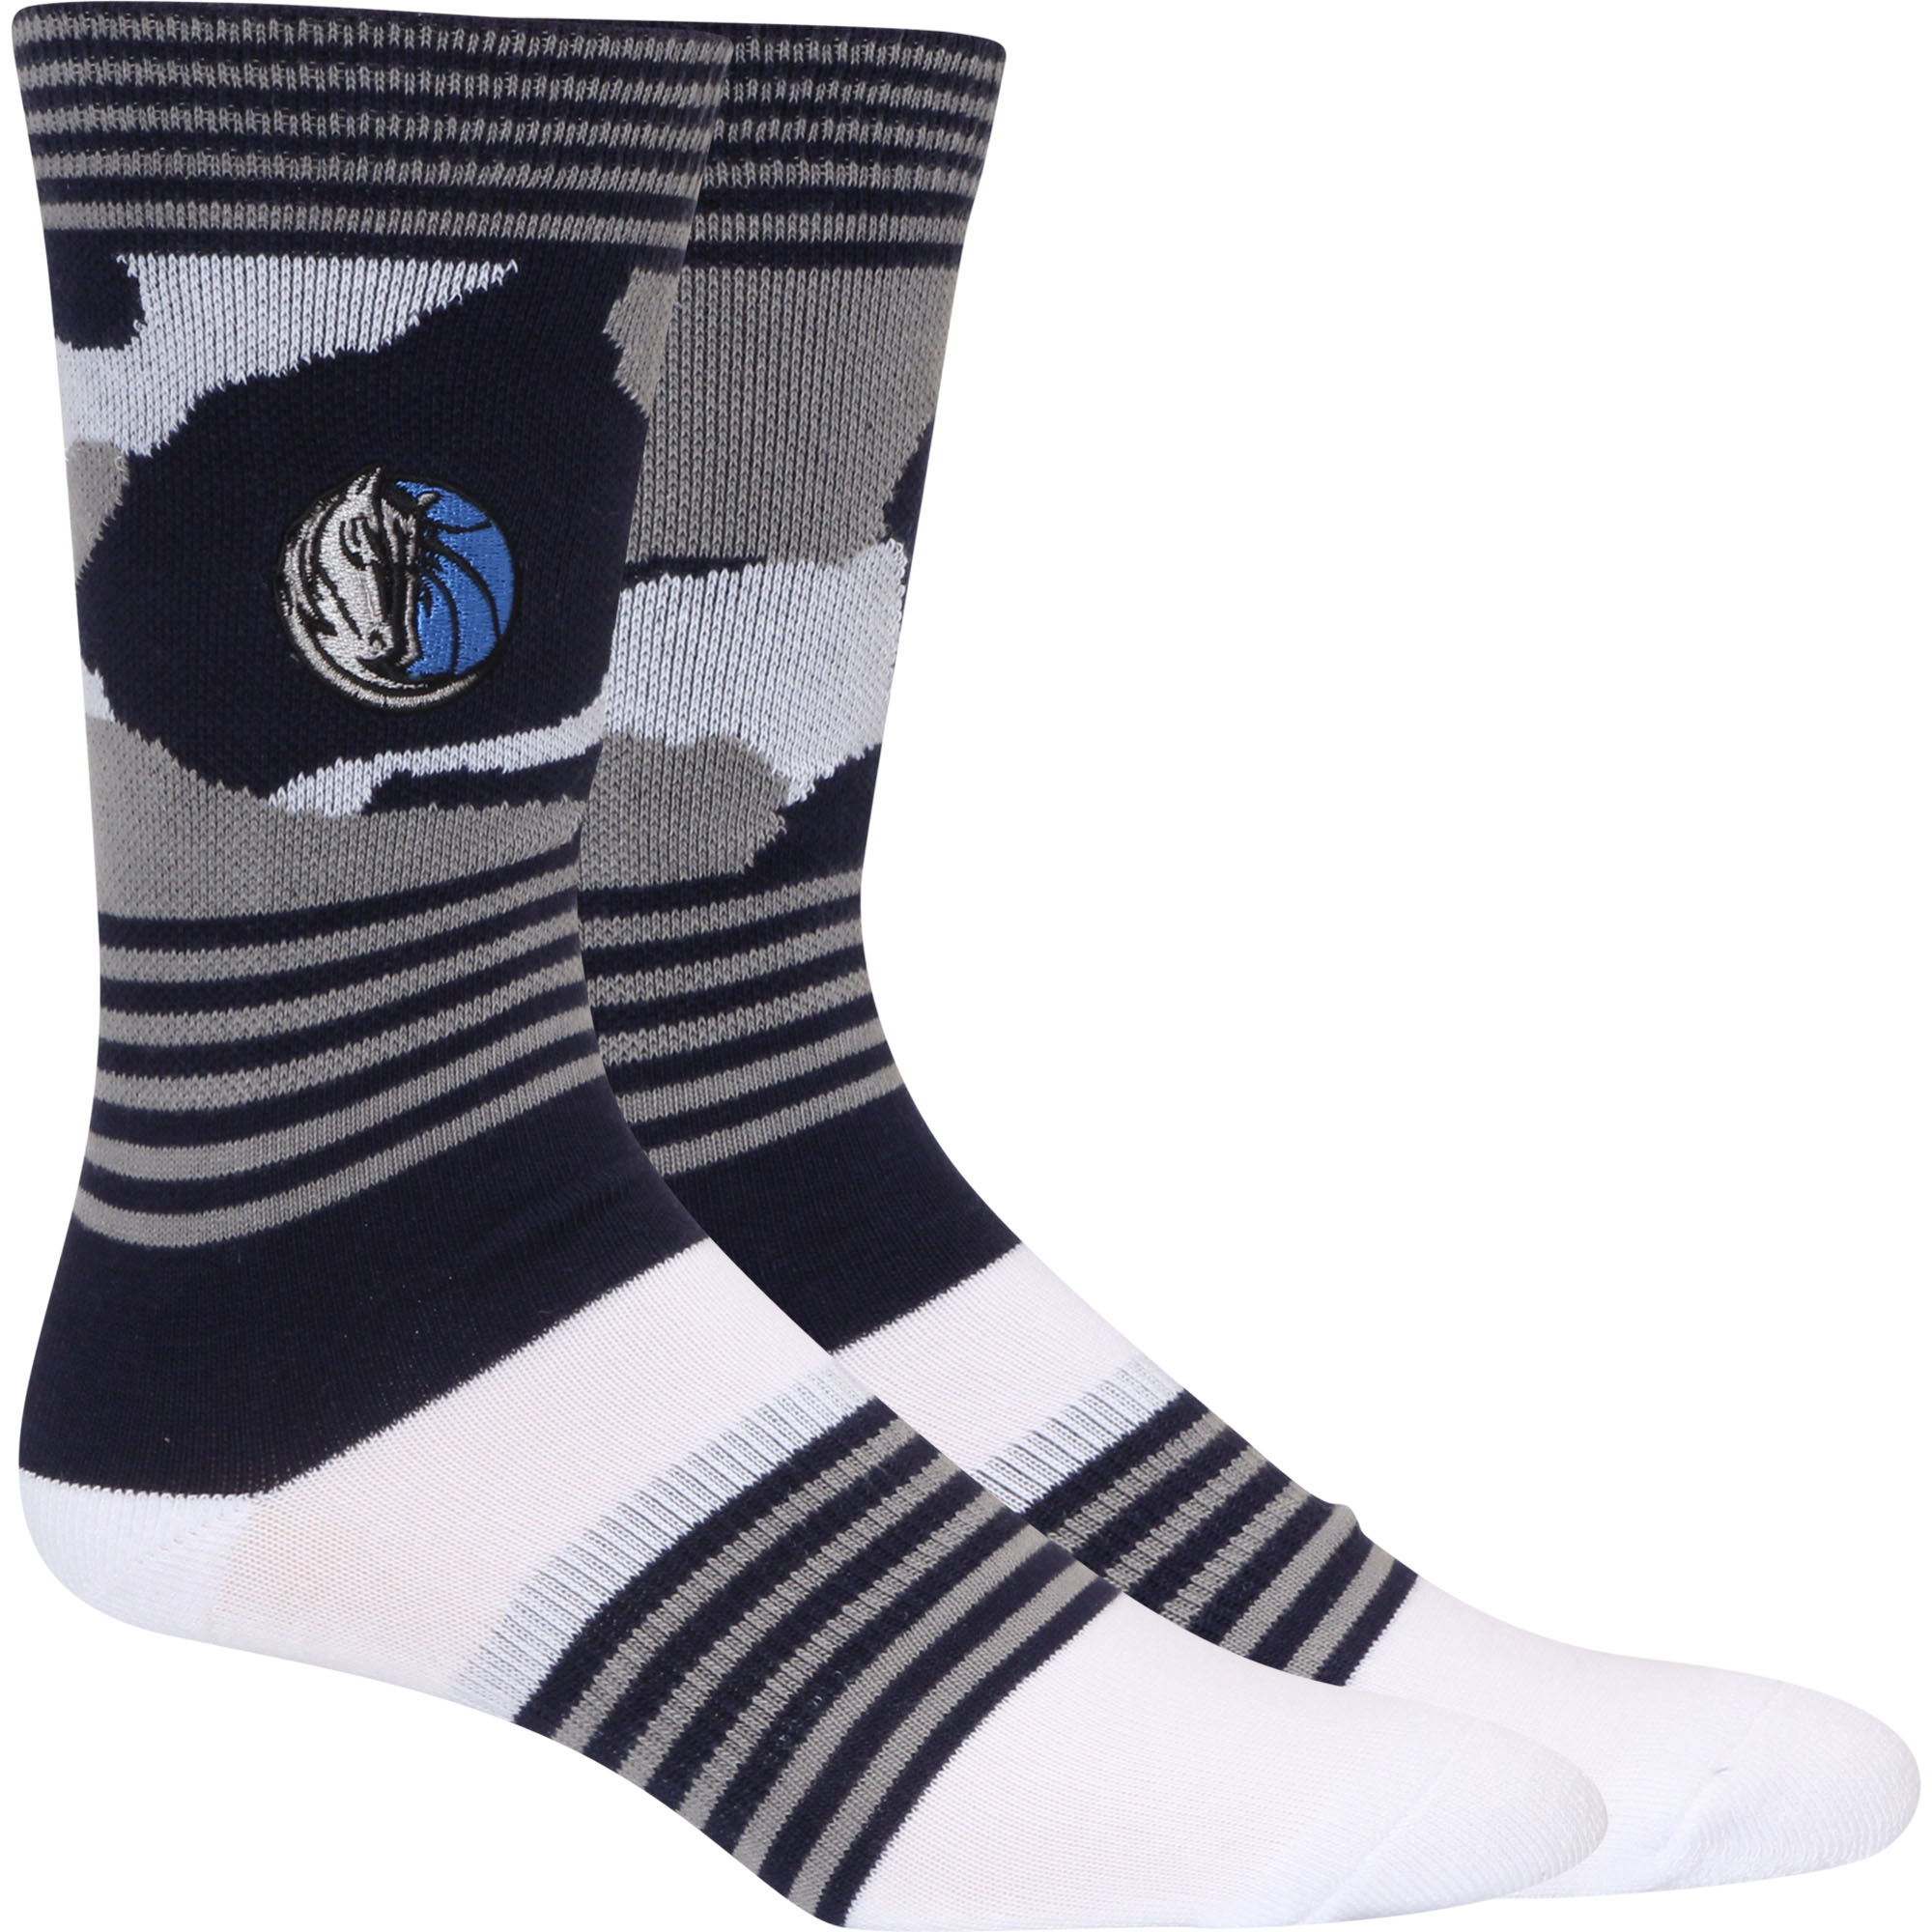 Dallas Mavericks Camo Crew Socks - L